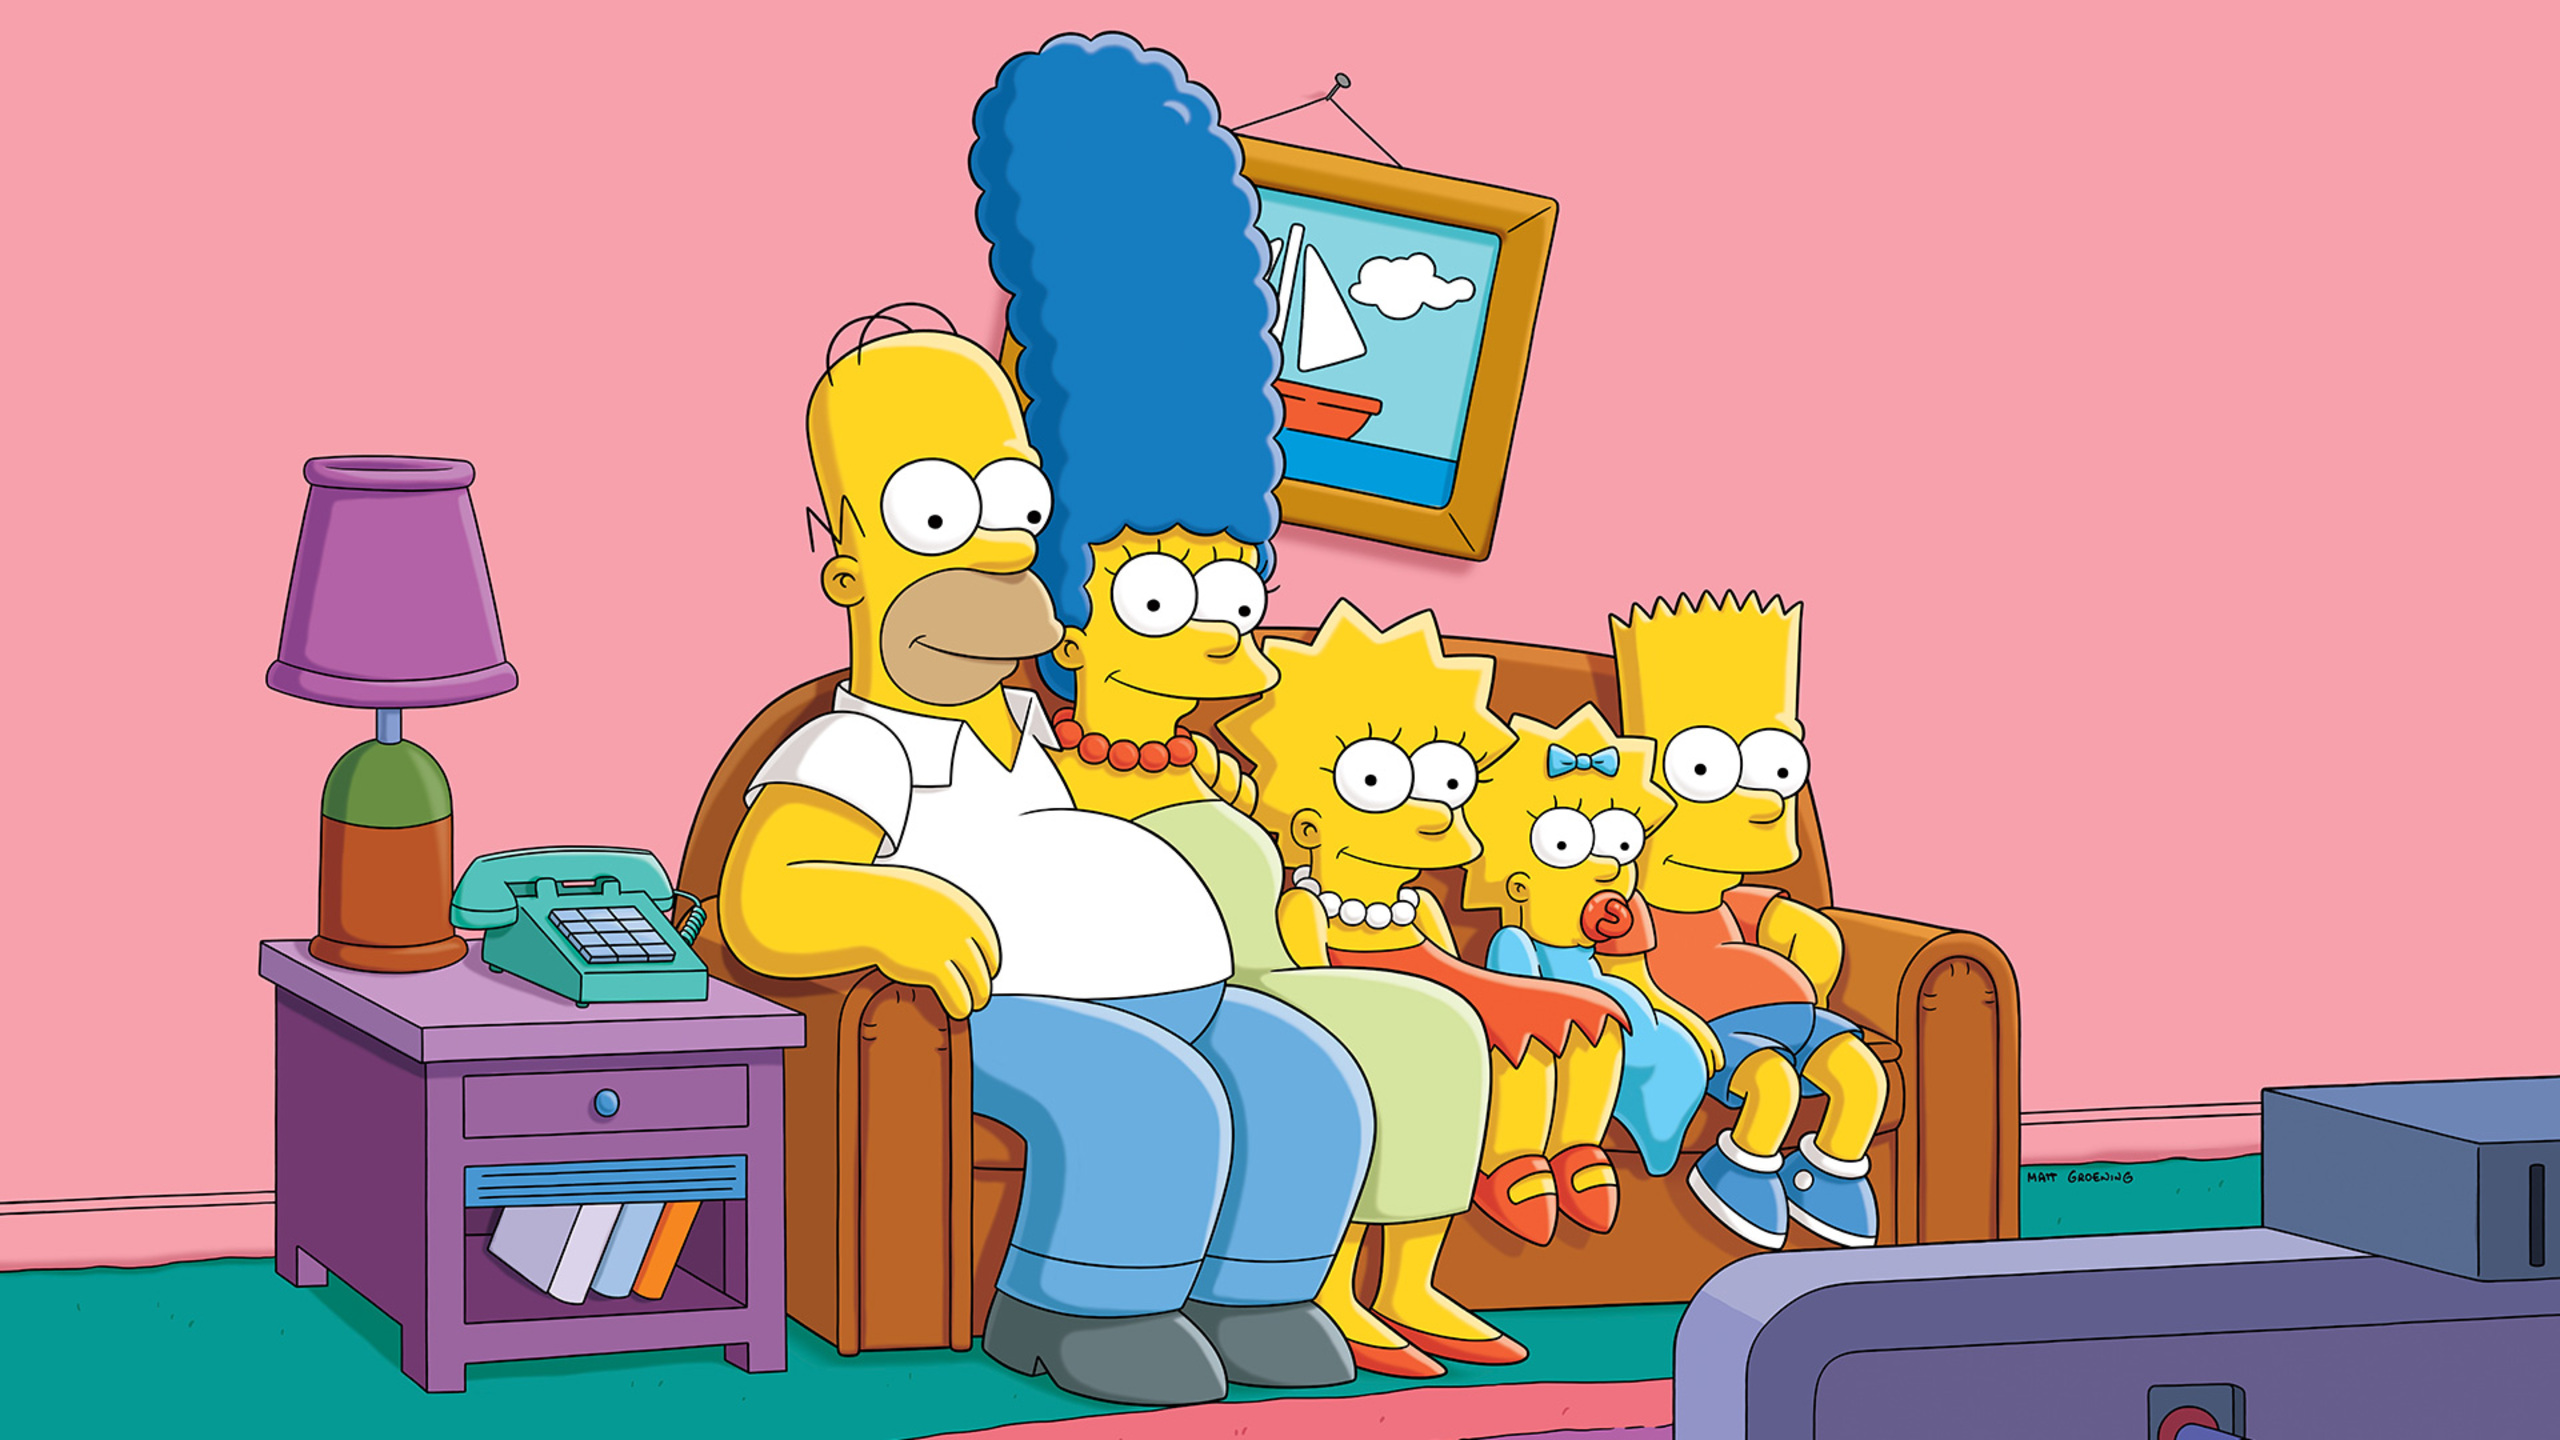 2560x1440 The Simpsons Original 1440p Resolution Hd 4k Wallpapers Images Backgrounds Photos And Pictures